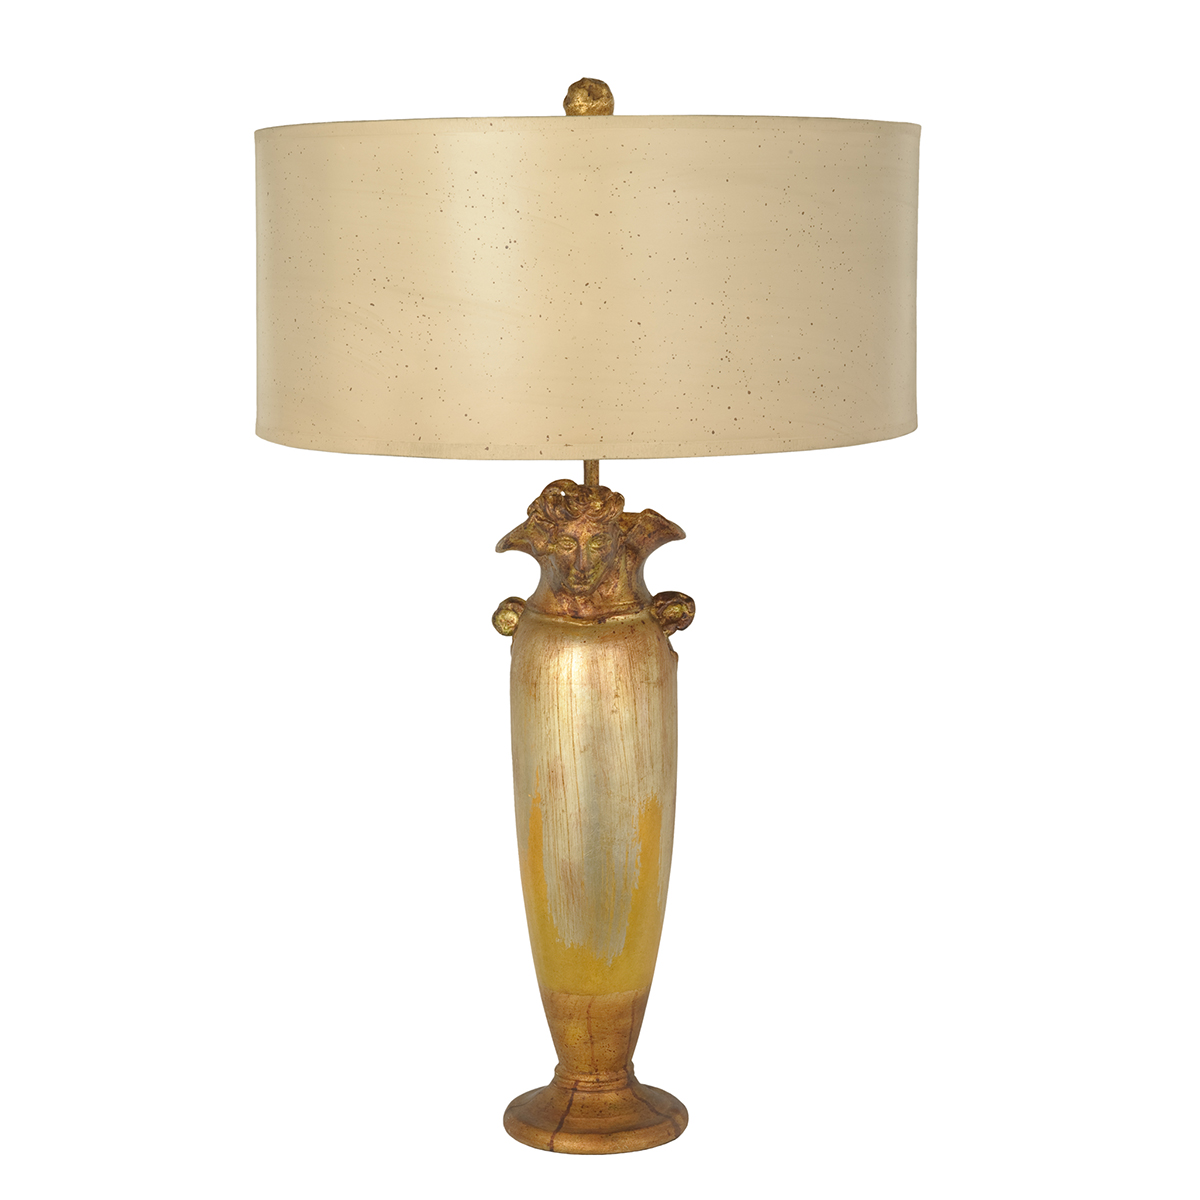 Bienville Table Lamp Antiqued Mustard and Gold